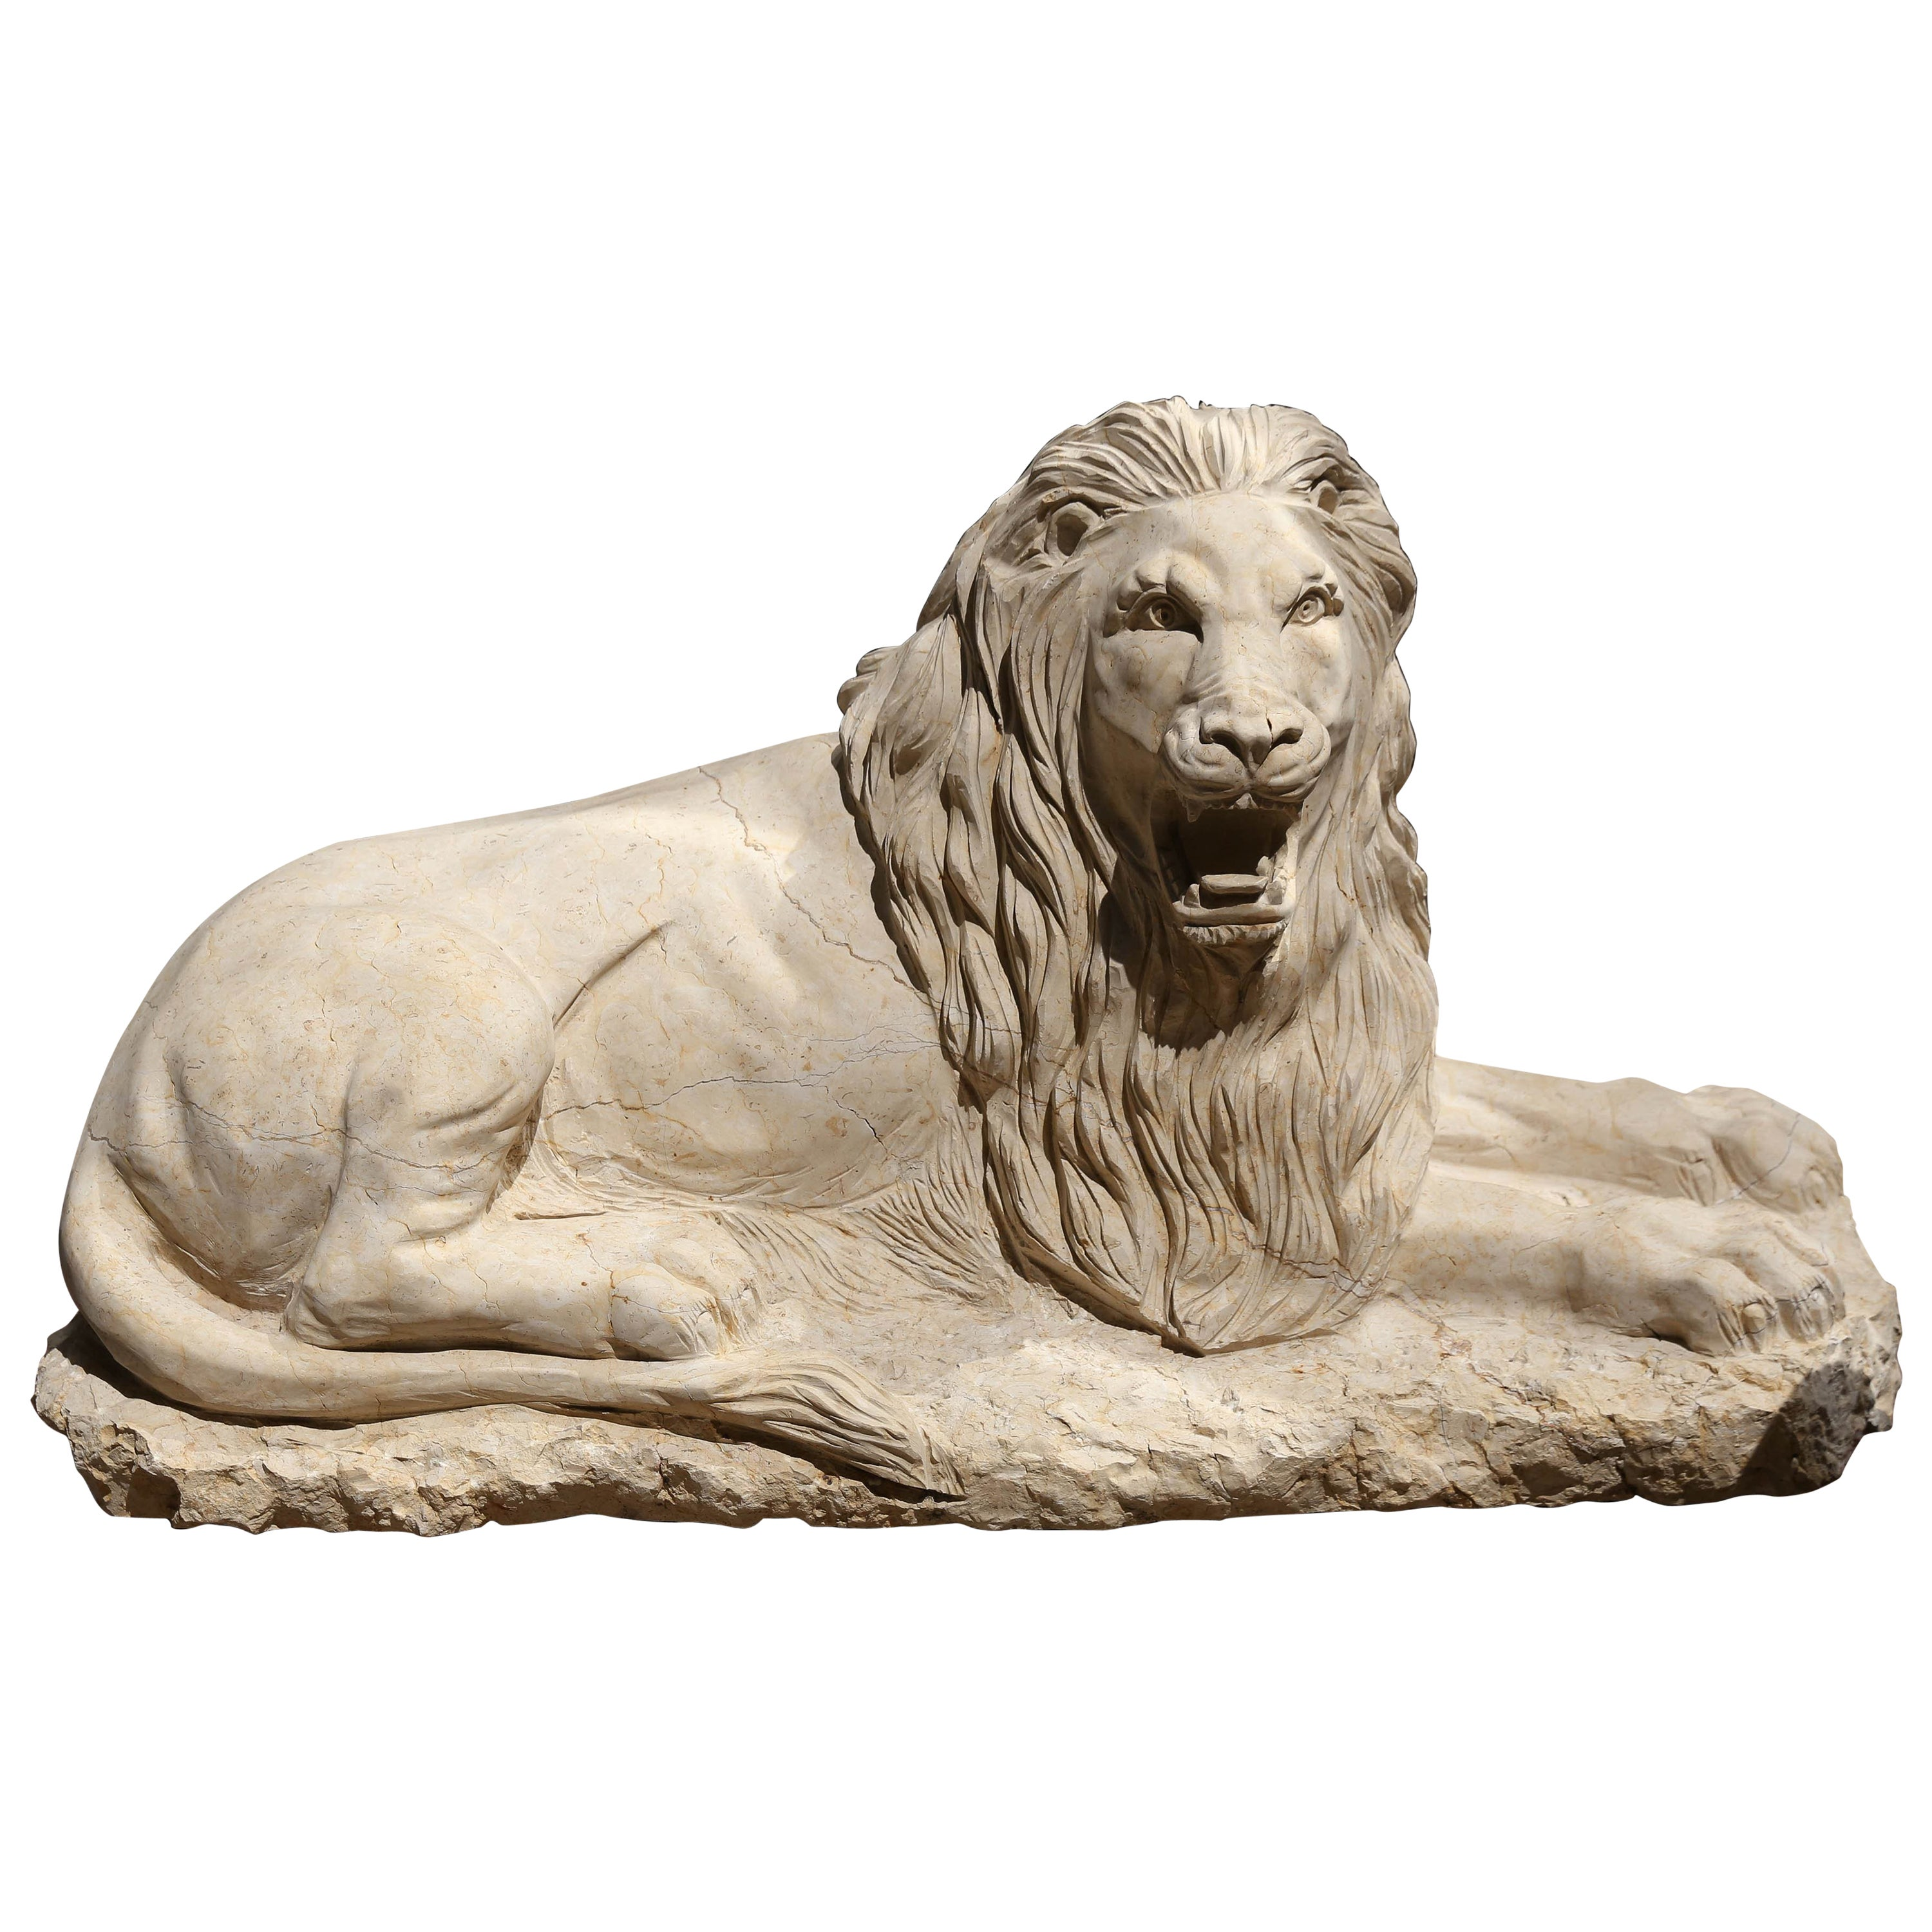 Cream Marble Carved Lion Sculpture